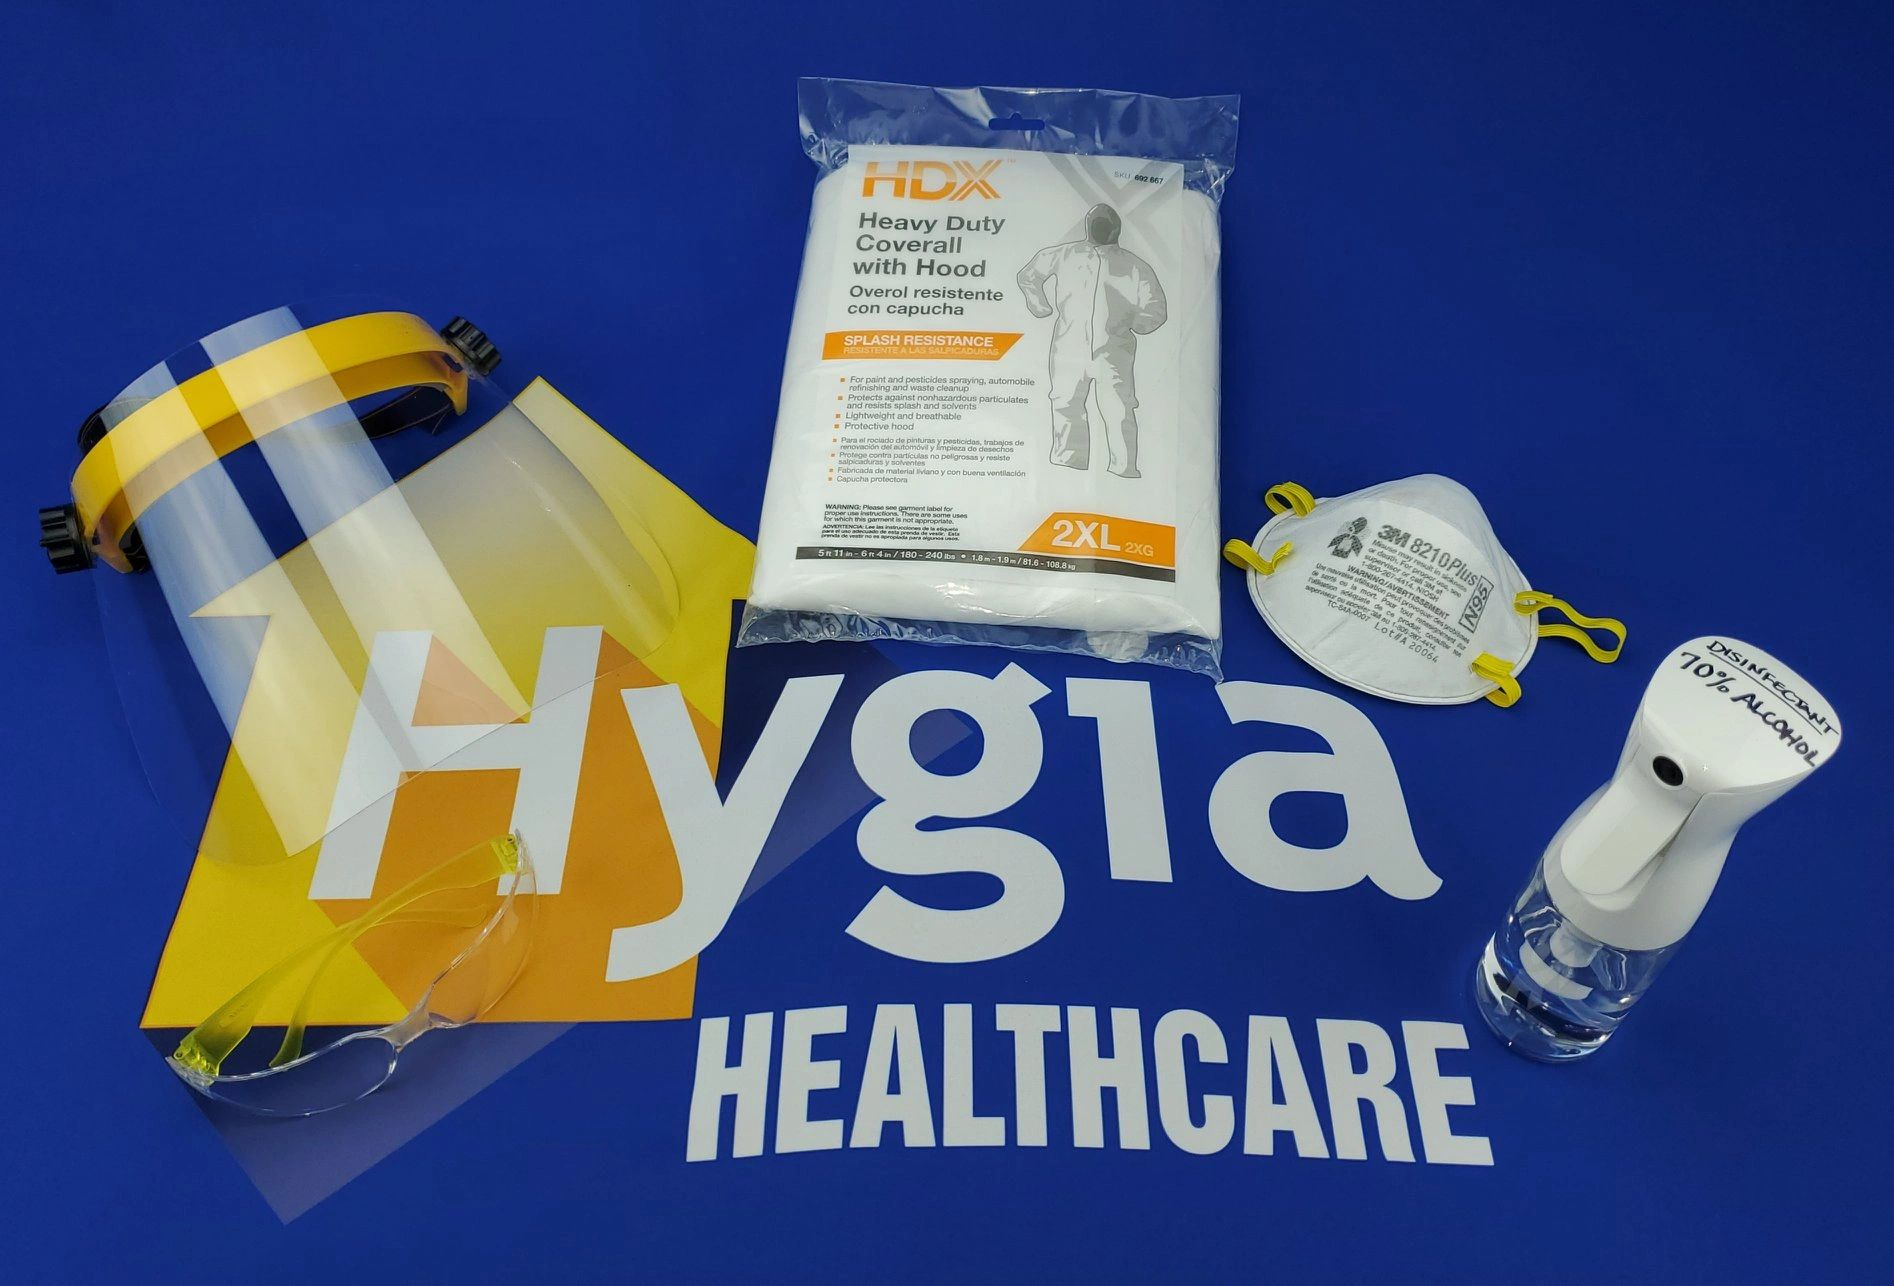 Hygia Healthcare COVID-19 PPE kit